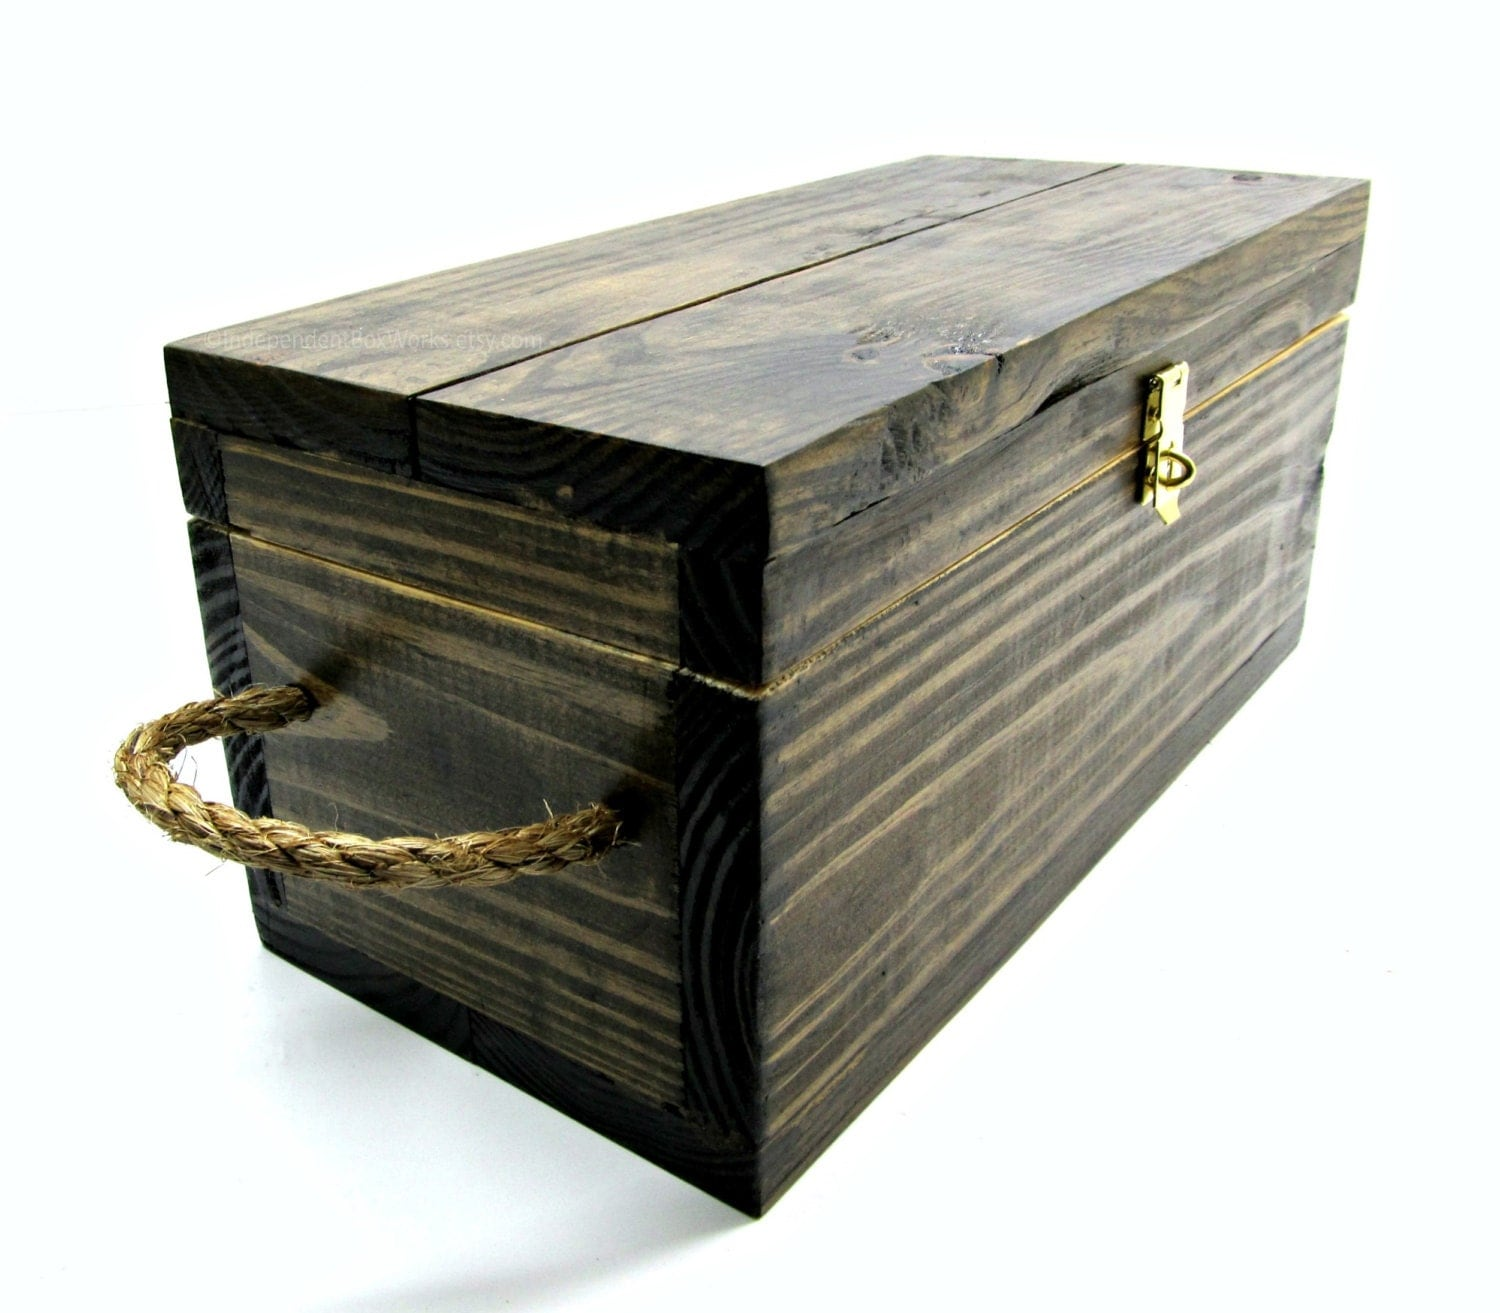 Rustic wooden gift box with rope handles stained medium